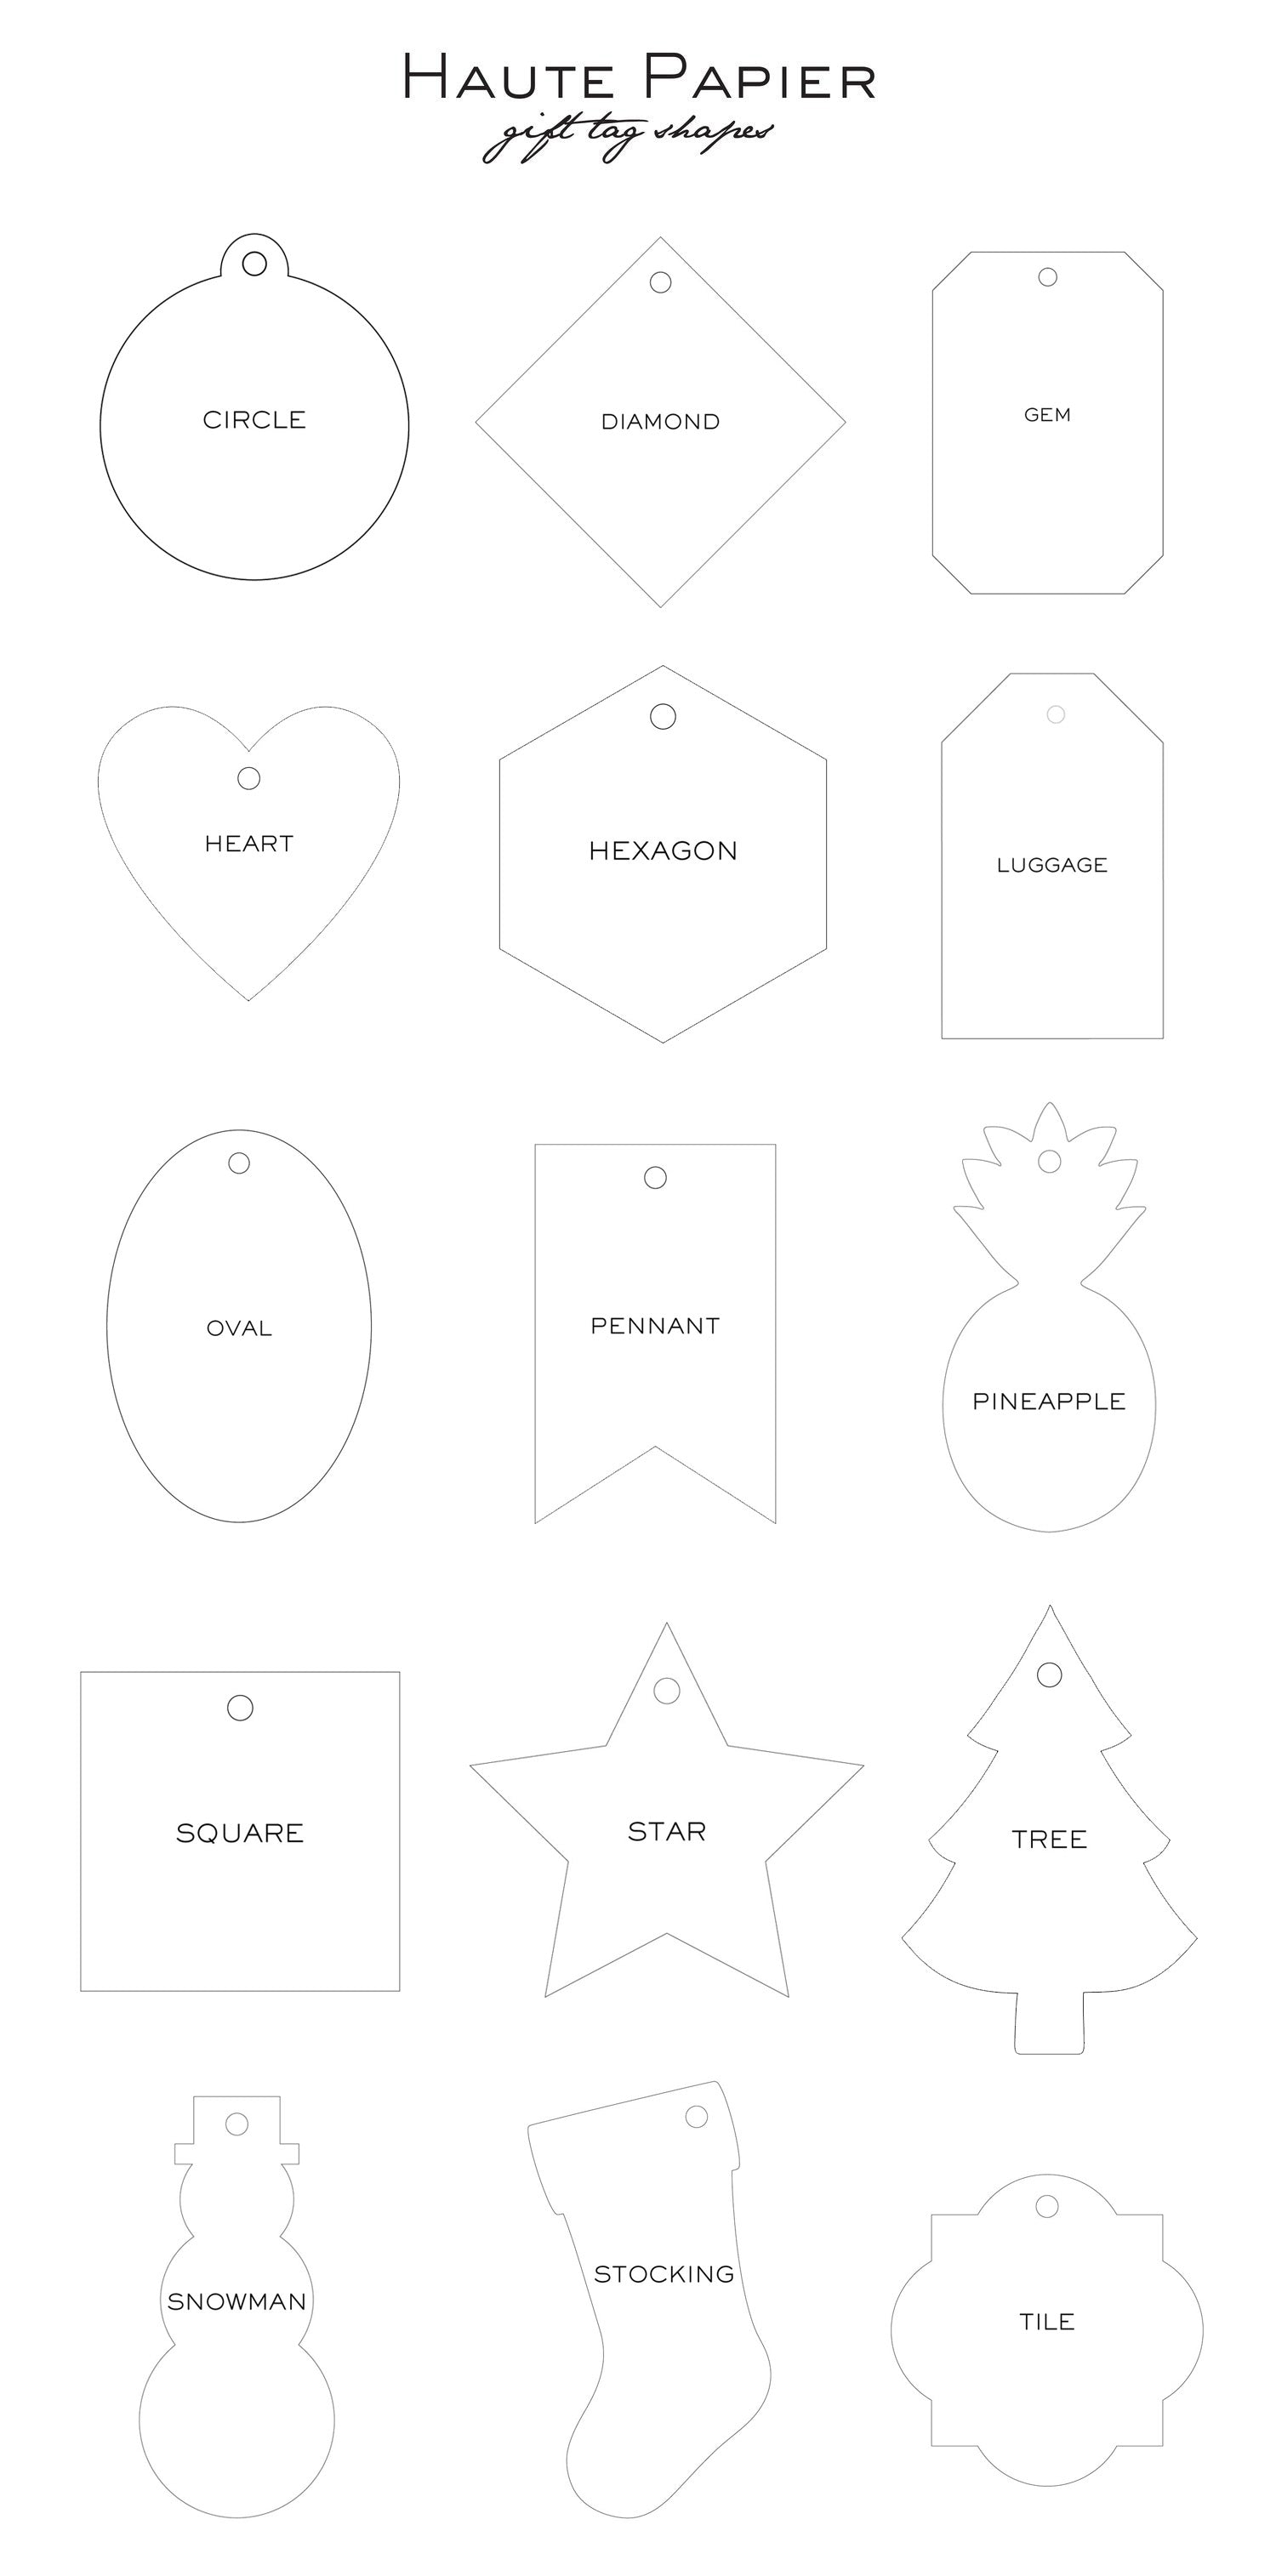 Haute Papier Gift Tag-T84 (Customizable)